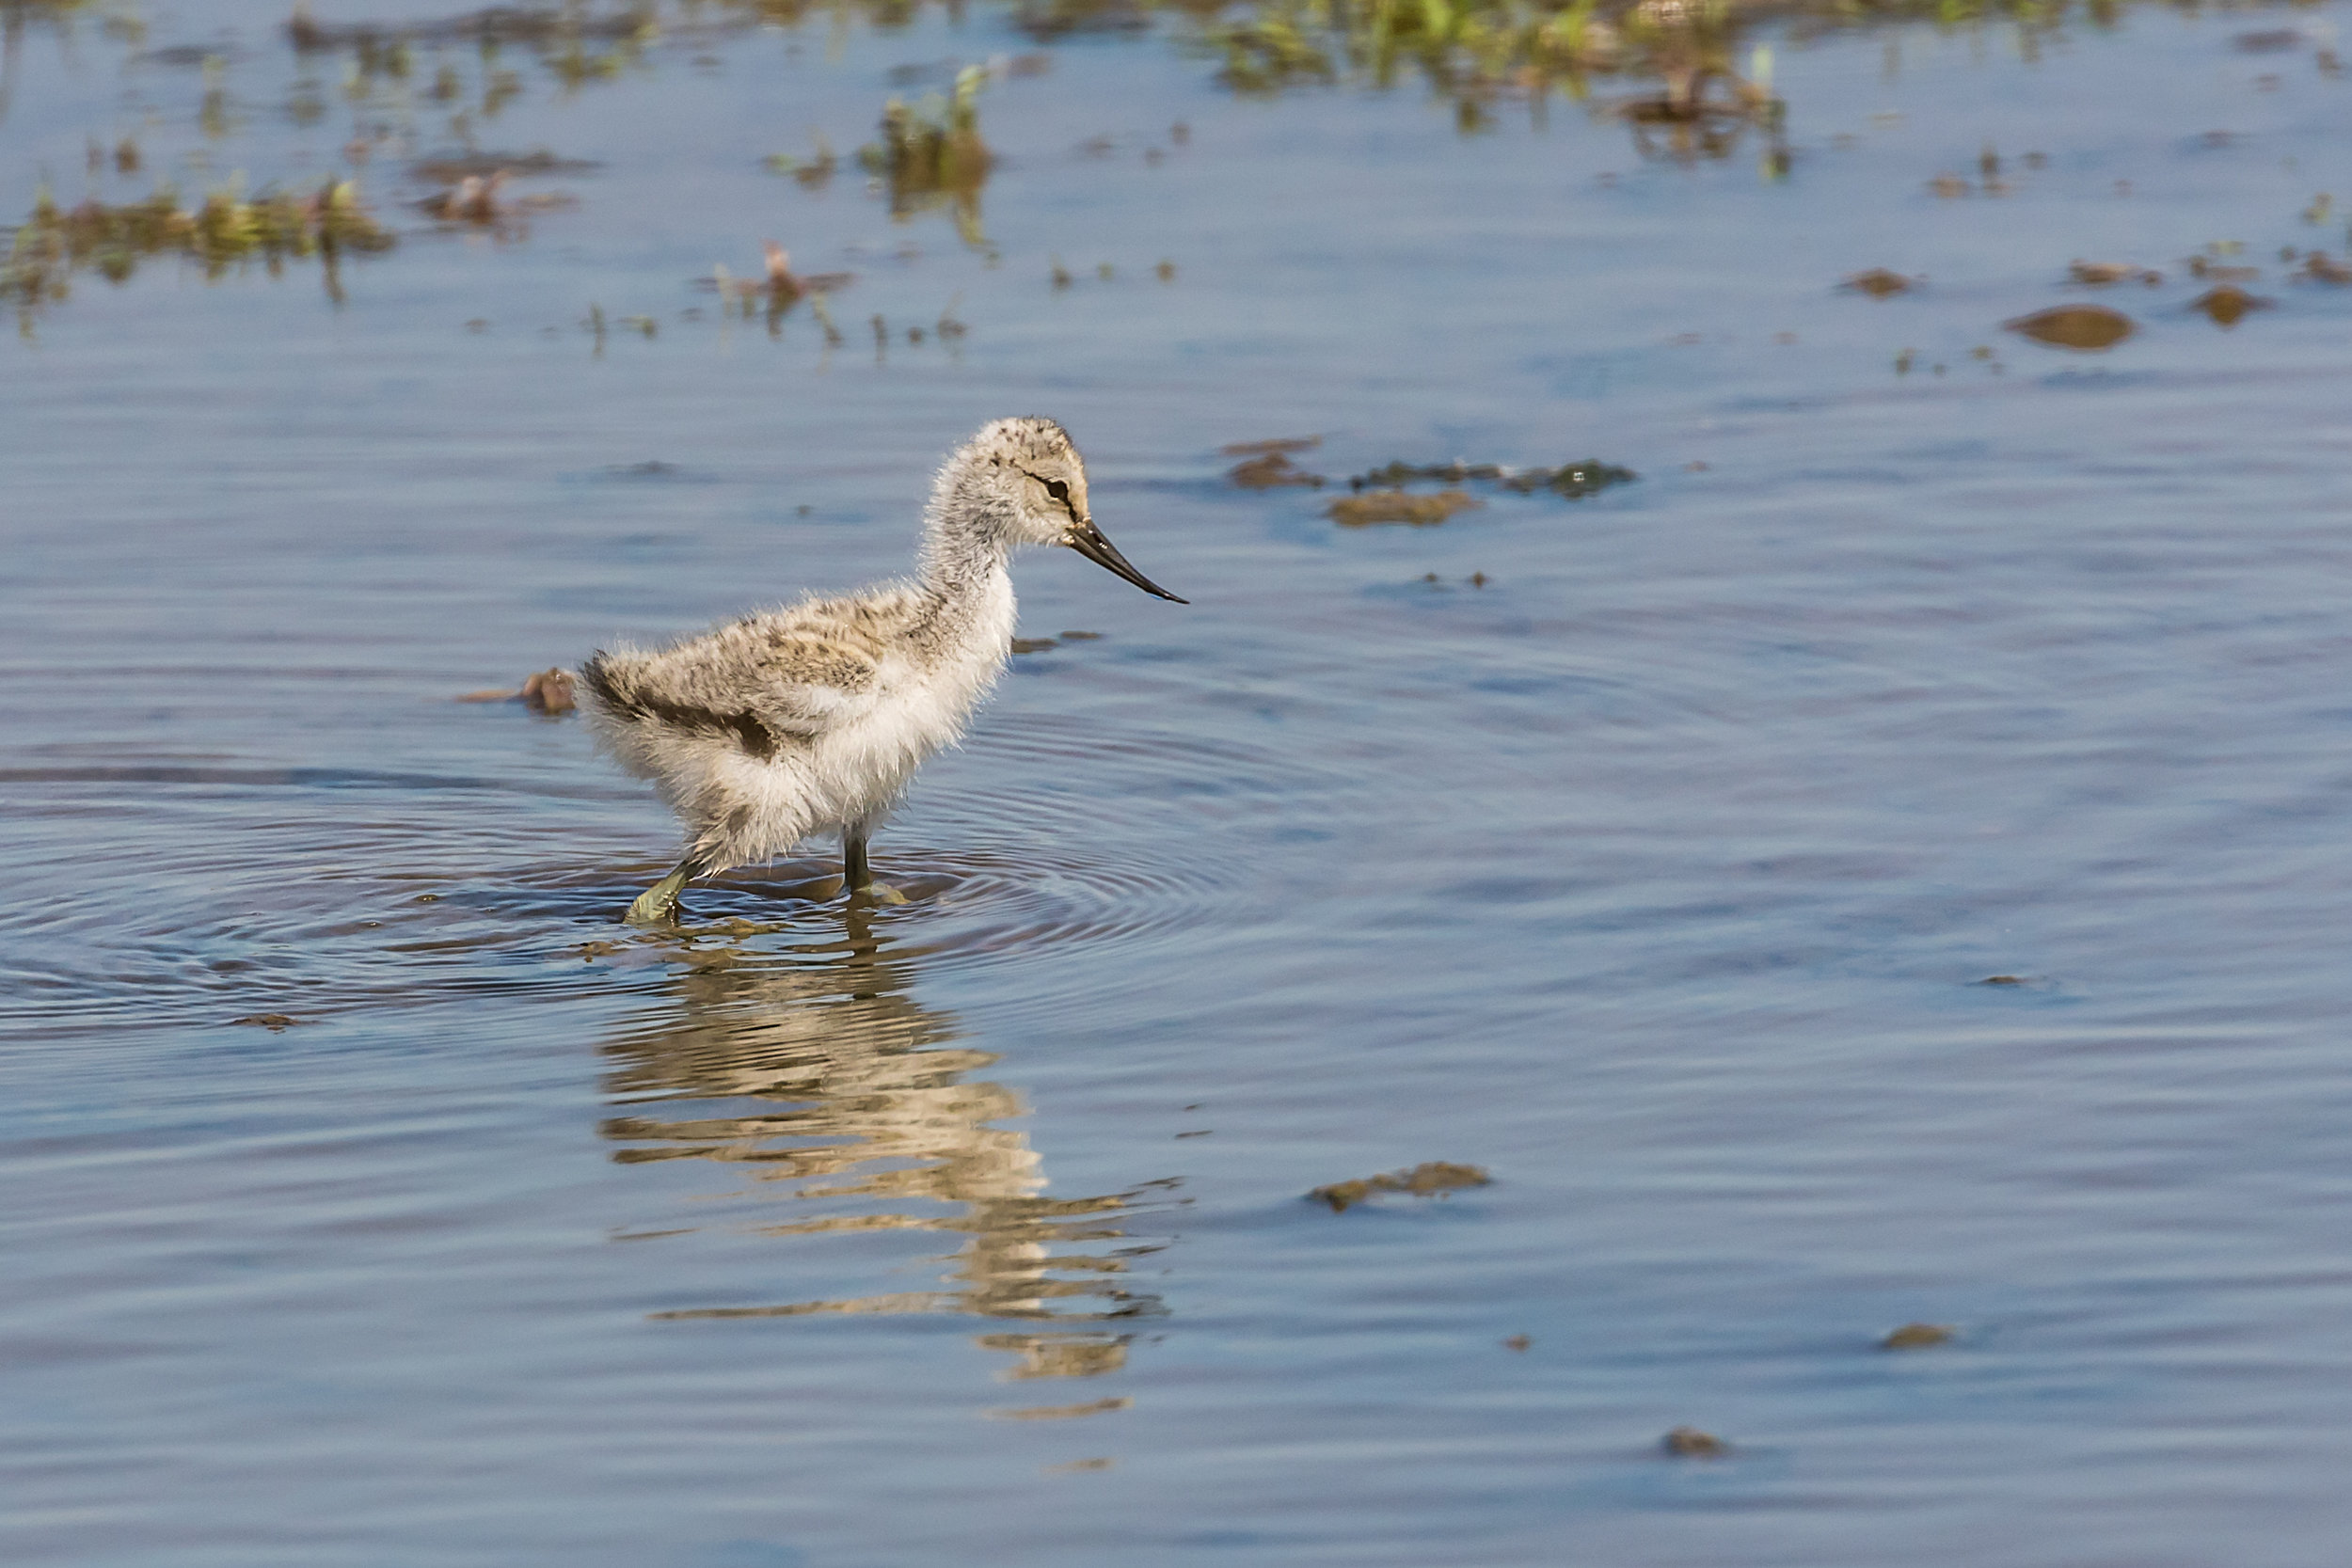 An Avocet chick